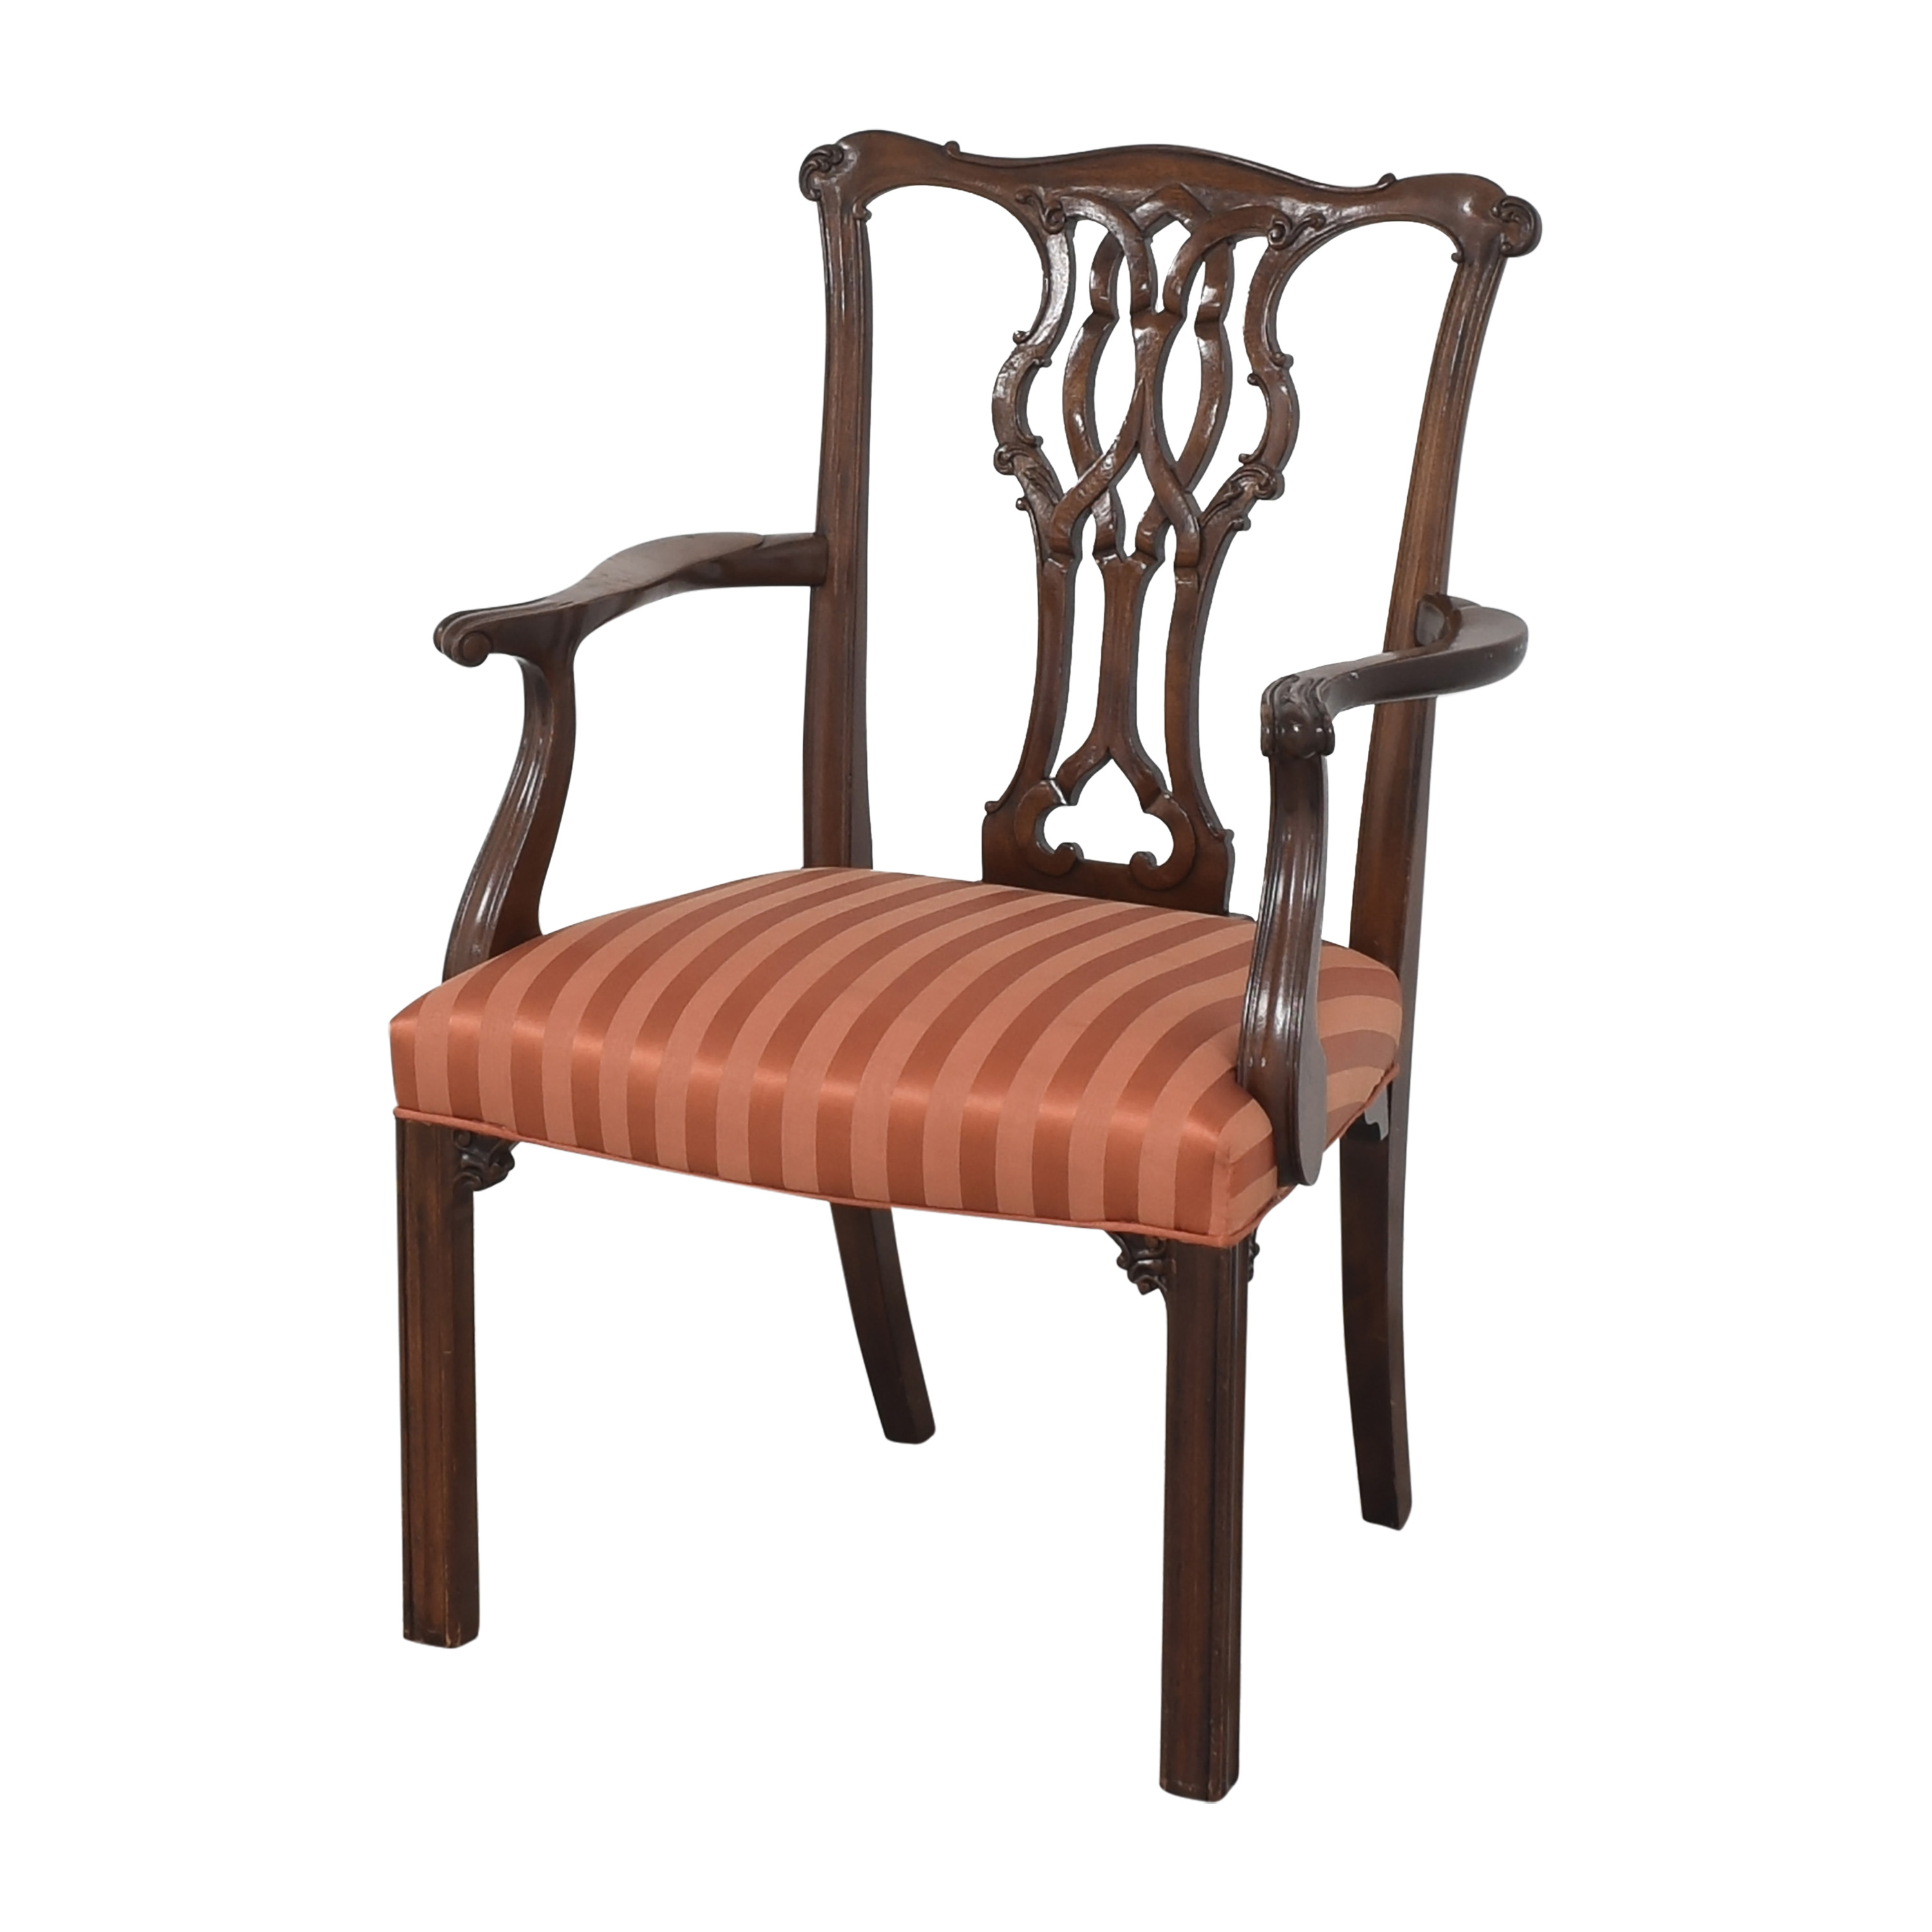 buy Baker Furniture Baker Furniture Chippendale Dining Chairs online